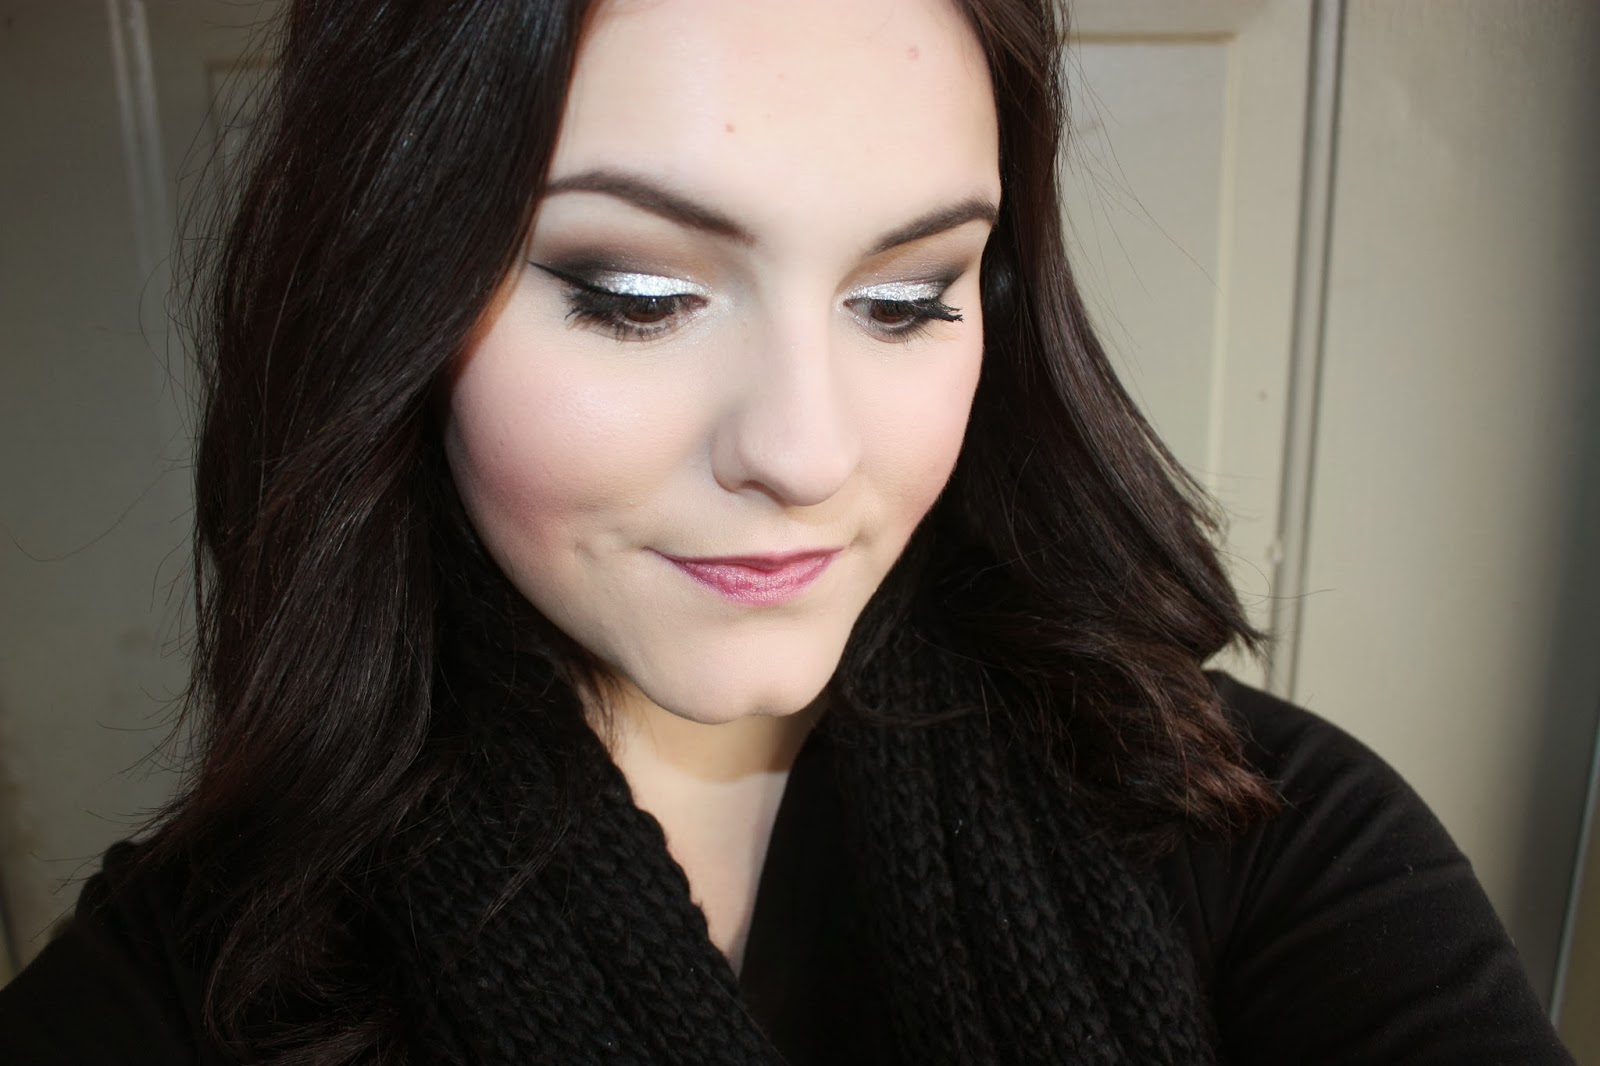 katie alyse: Face of the Day 3: Fancy and Frosted